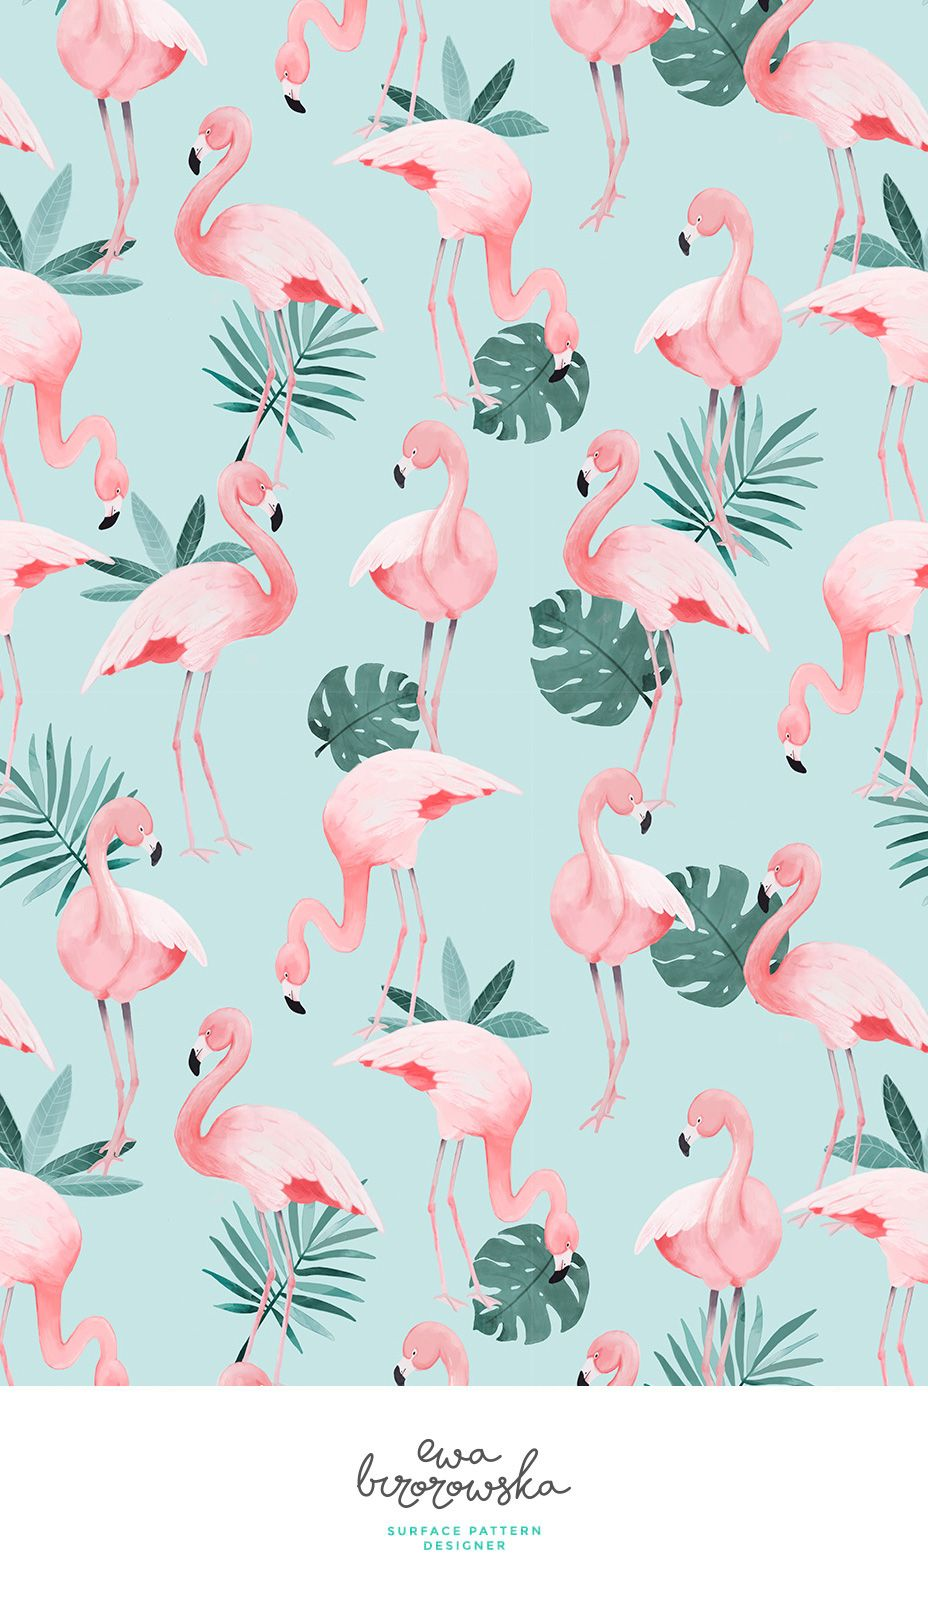 Flamingo - textile surface pattern design with flamingos on mint background with some tropical jungle palm leaves. #tropicalpattern